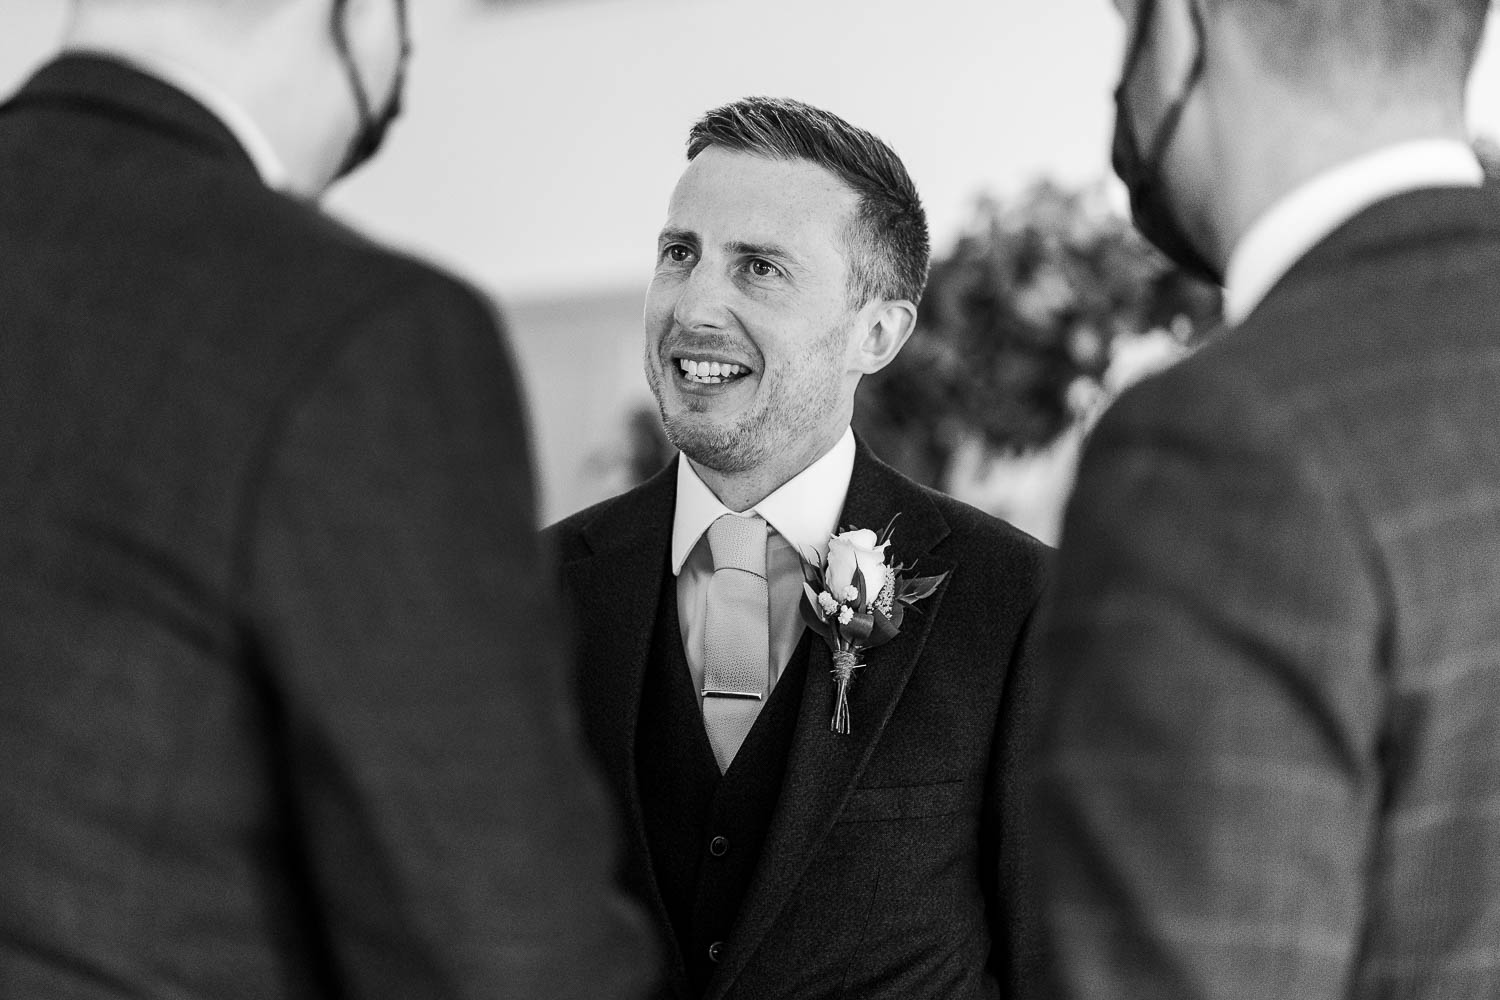 Groom laughing before the wedding